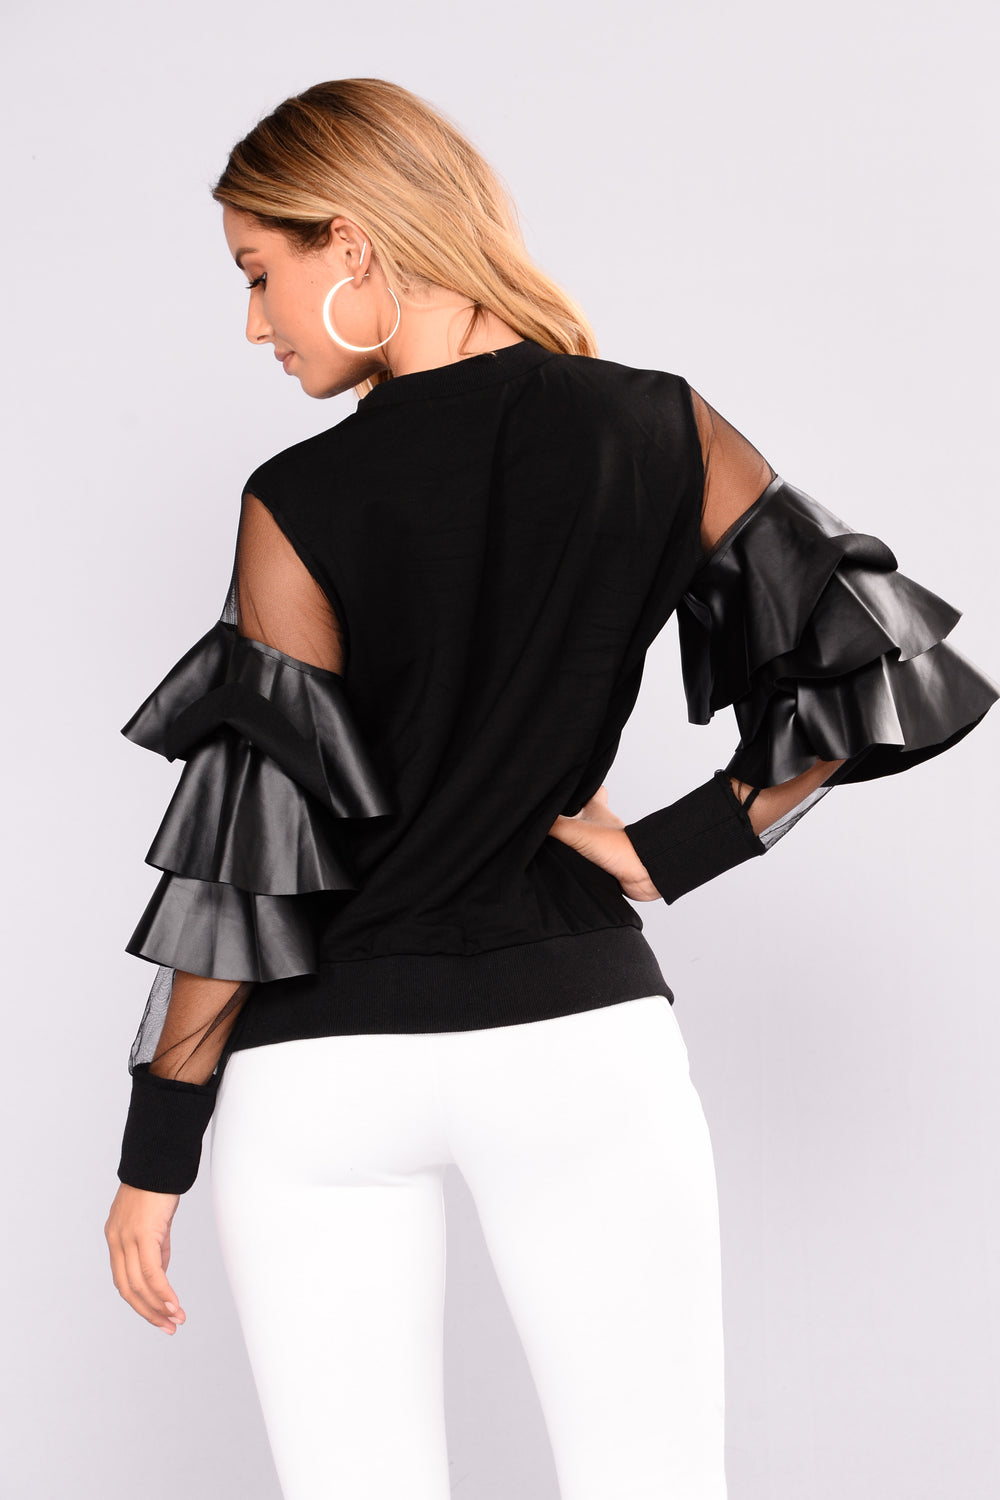 Ruffle Trouble Top - Black